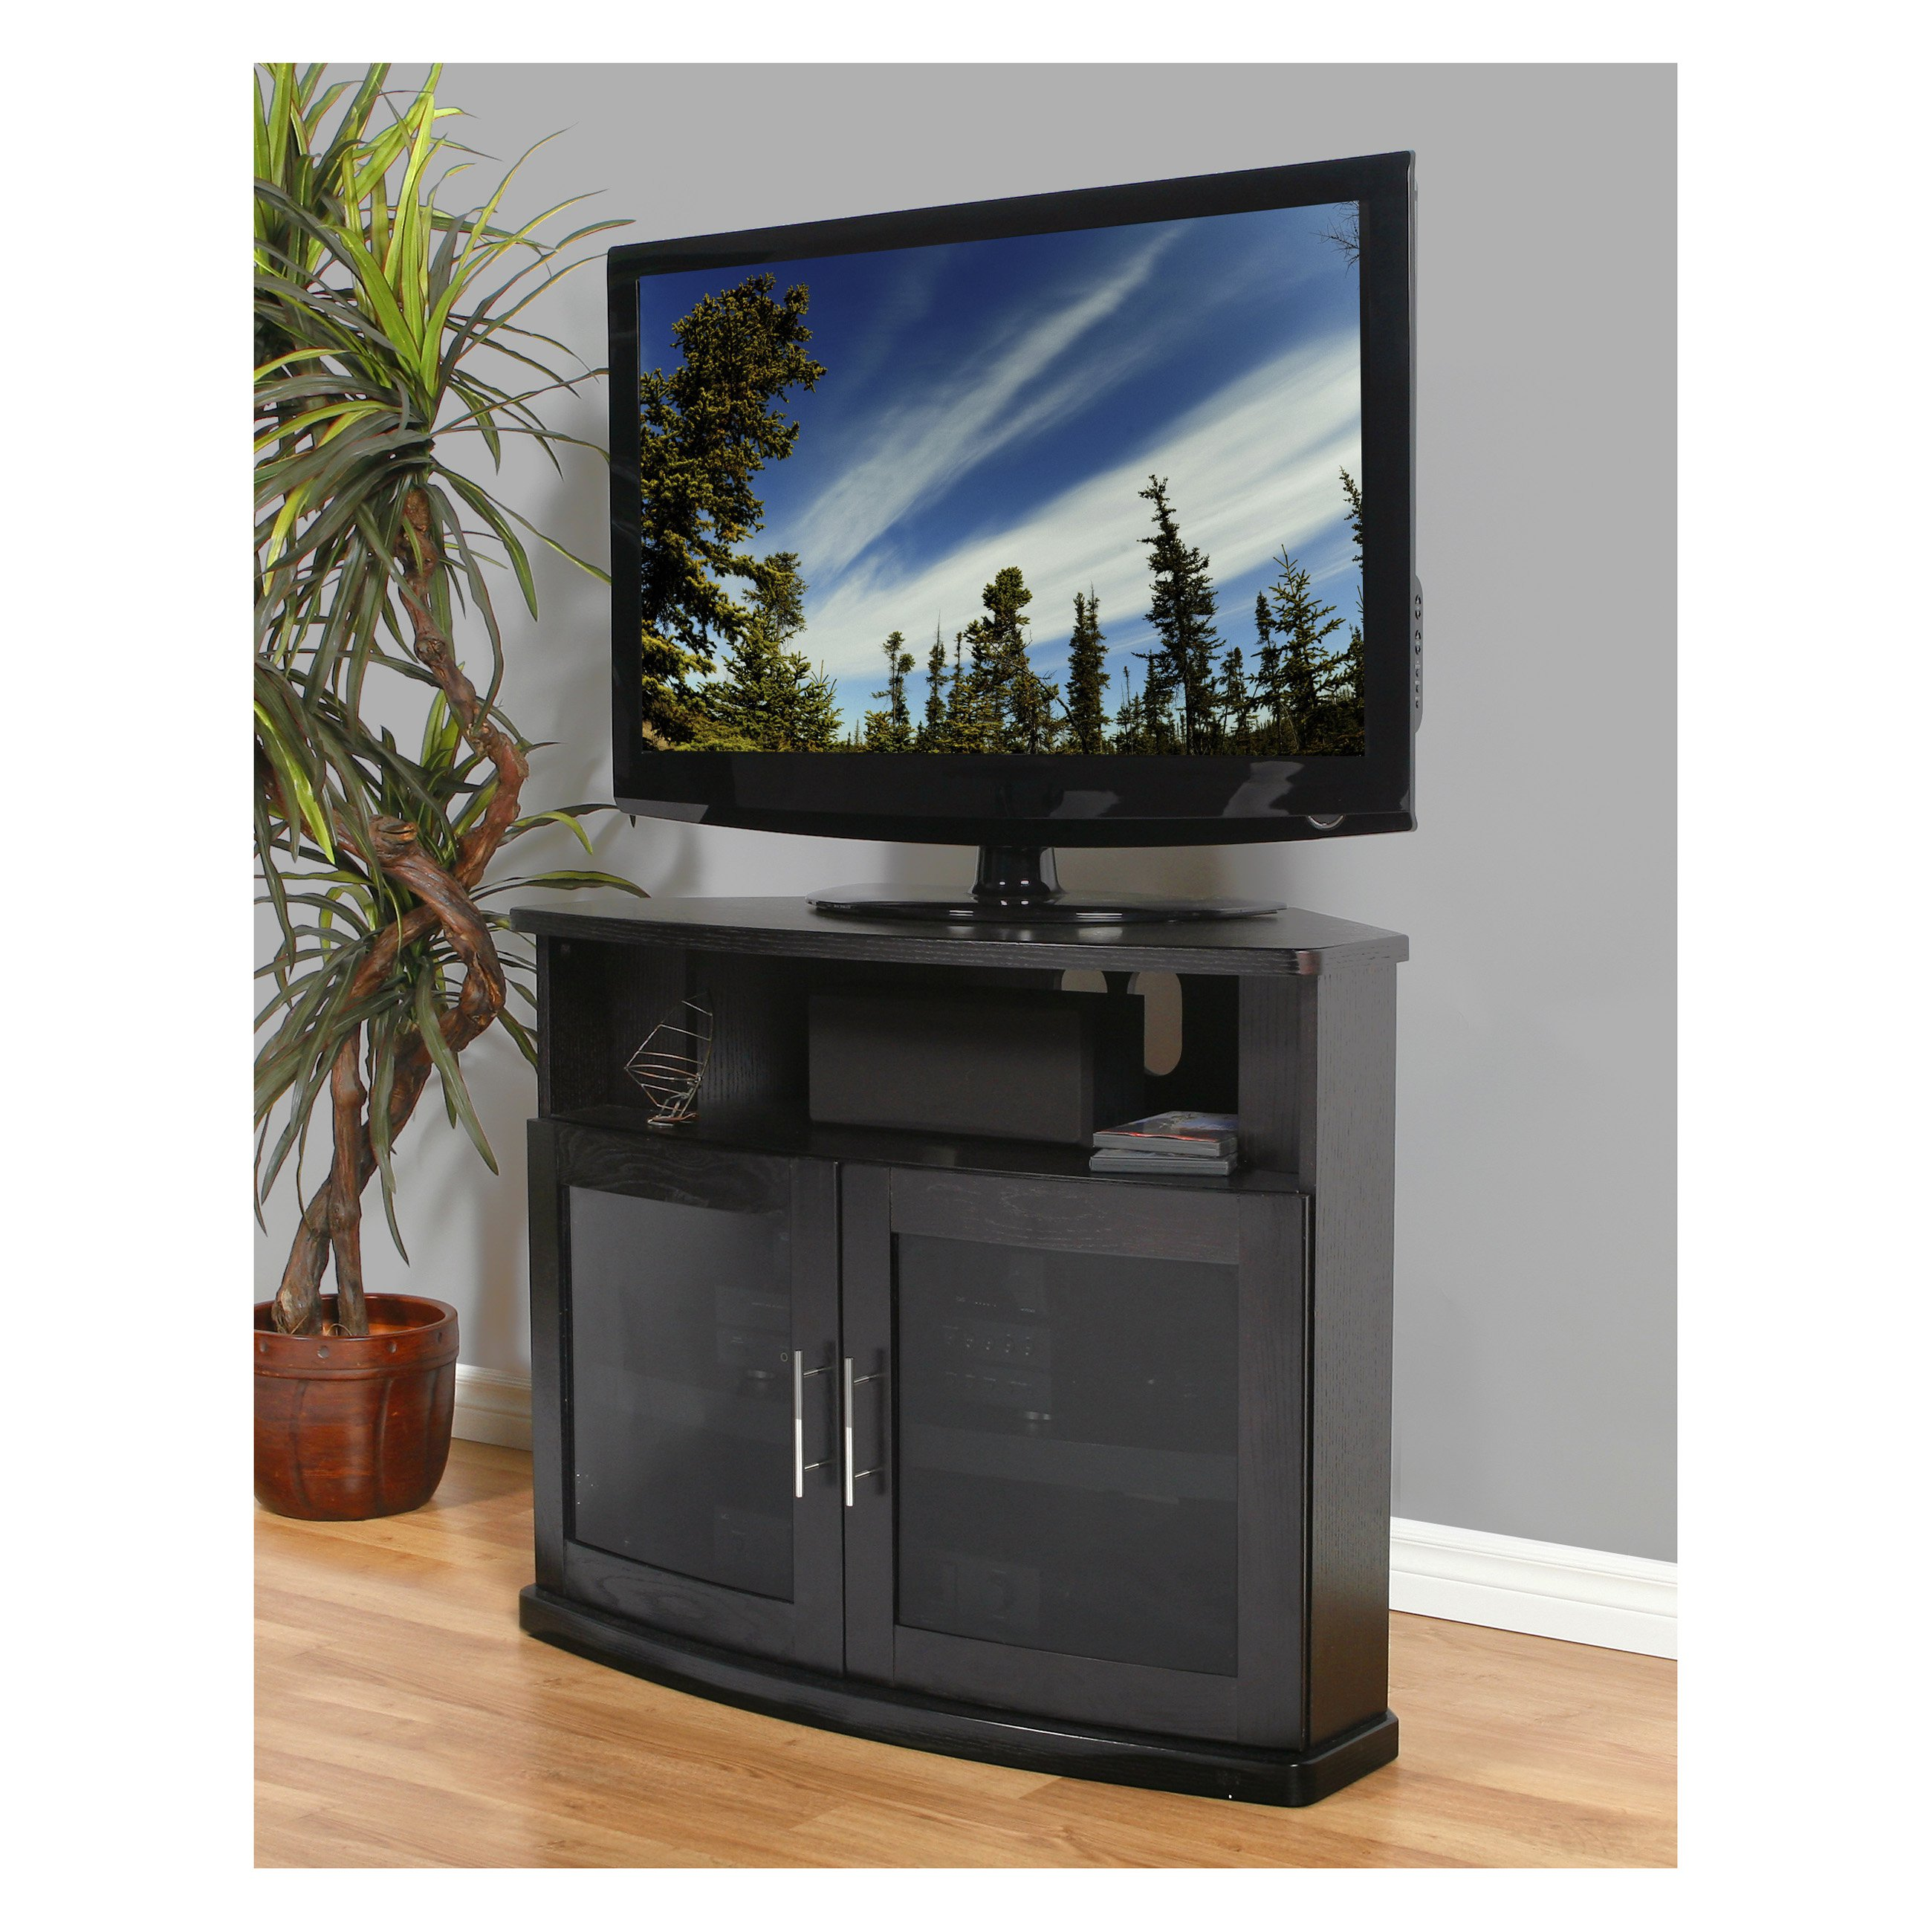 PLATEAU NEWPORT 40 B Corner Wood 40 in. TV Stand - Black Oak Finish